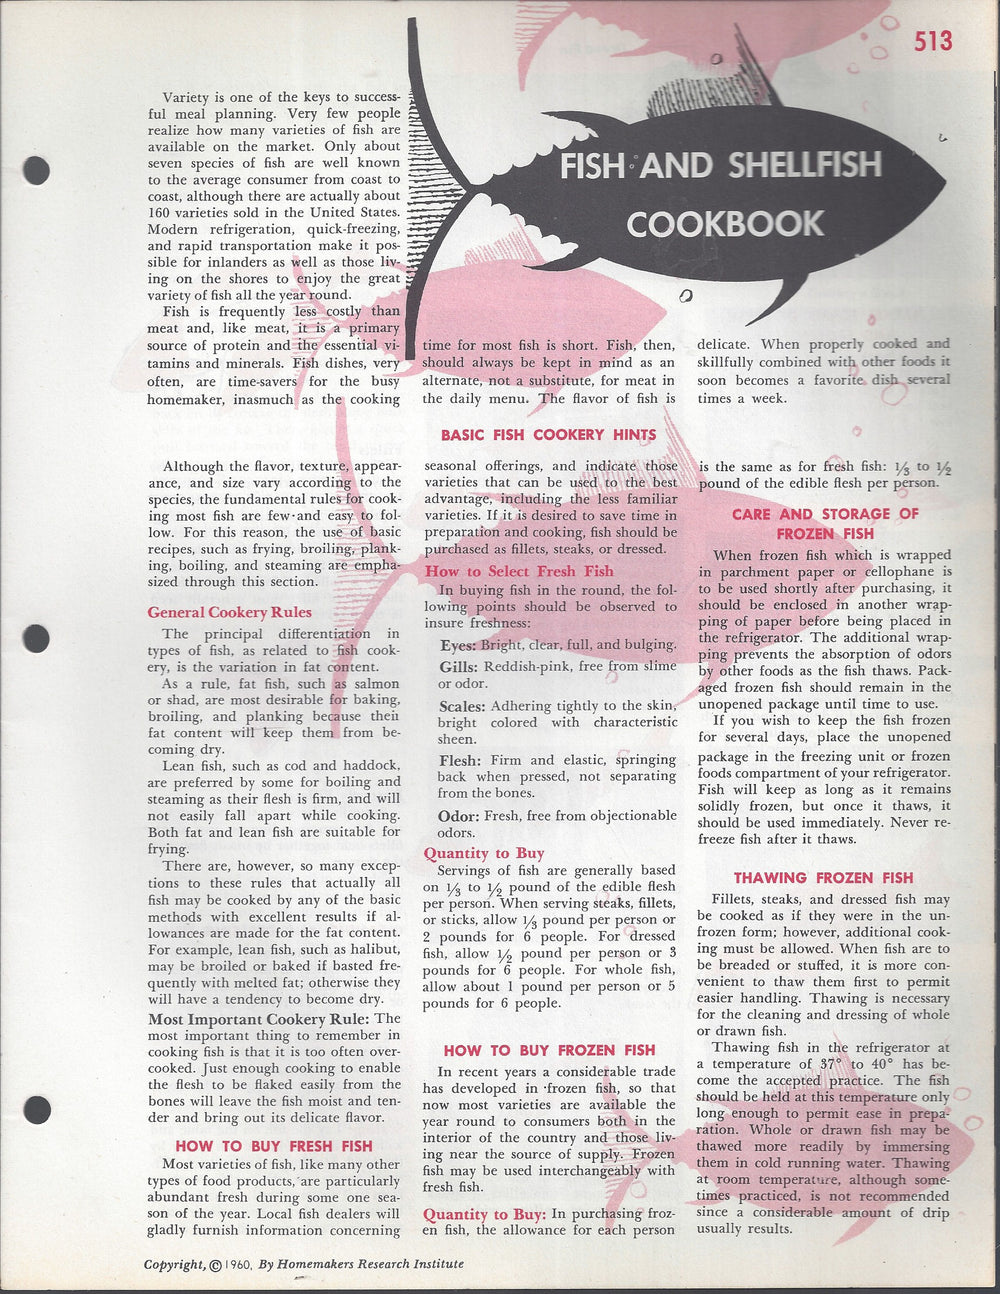 Mary Margaret McBride Encyclopedia of Cooking Cook Book Deluxe Edition 1960 (2ND EDITION) (PAGES 513-544)